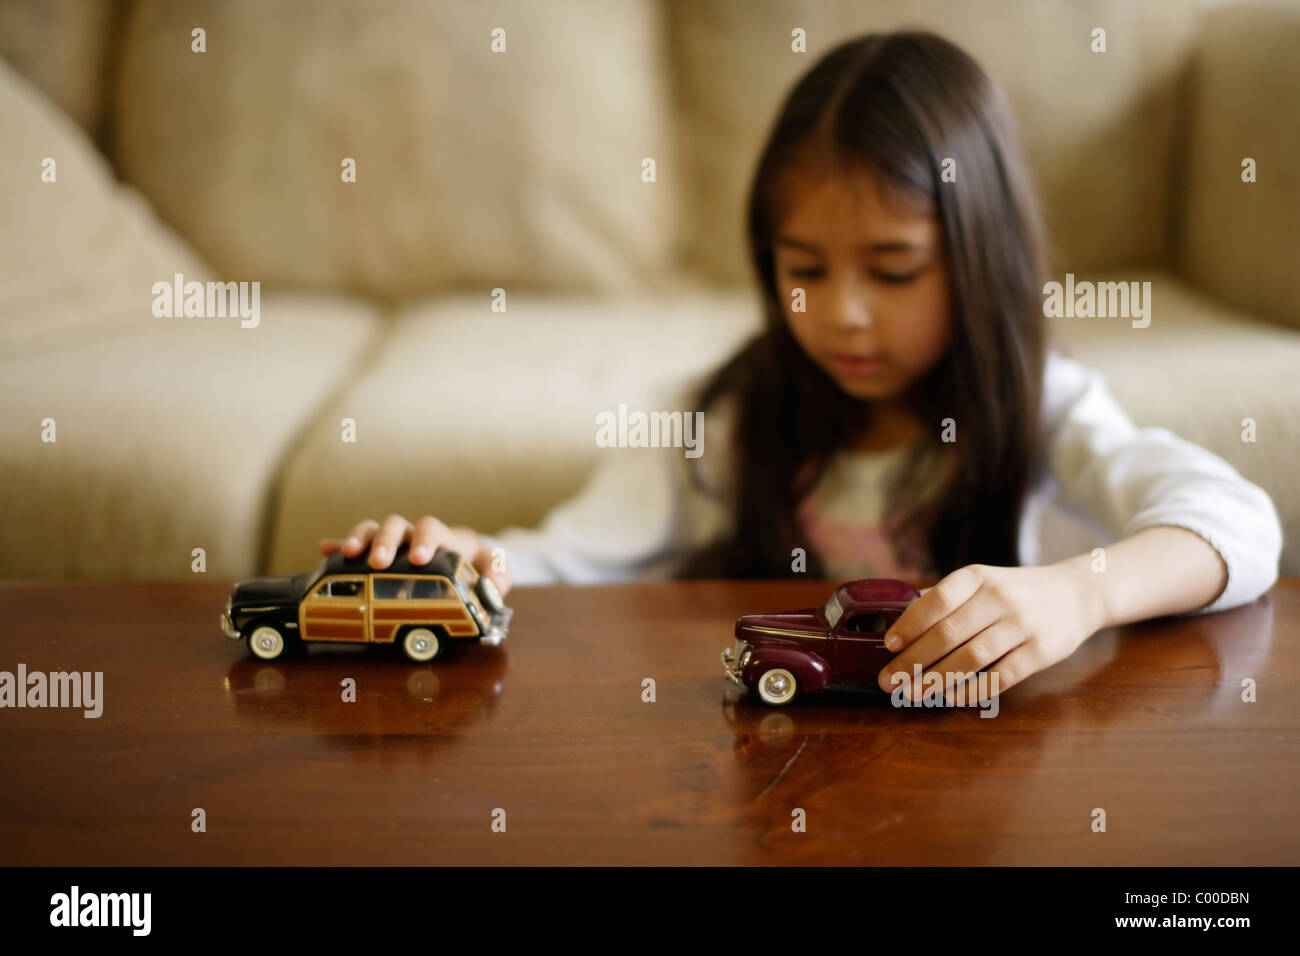 Girl plays with toy cars - Stock Image